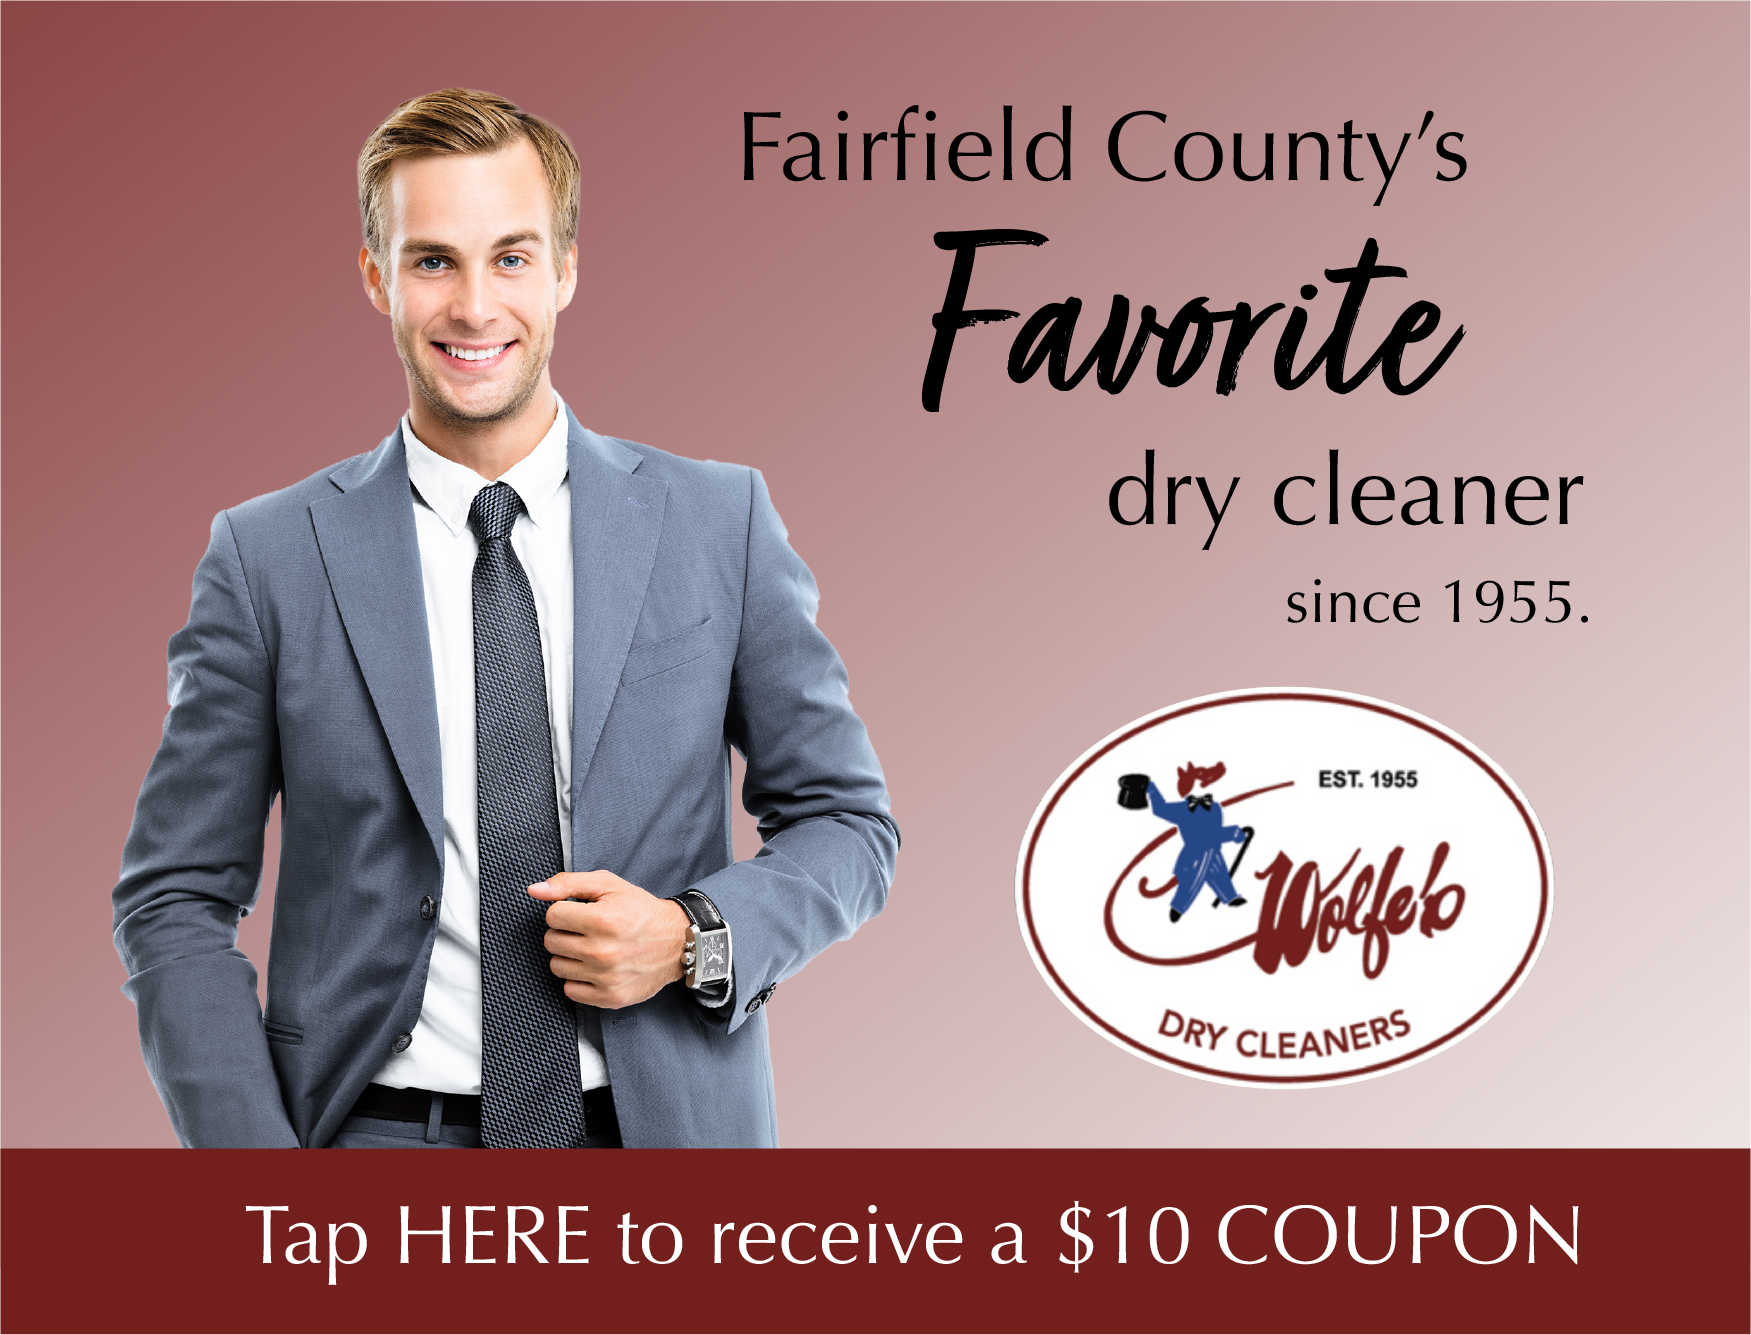 Wolfe's Dry Cleaners